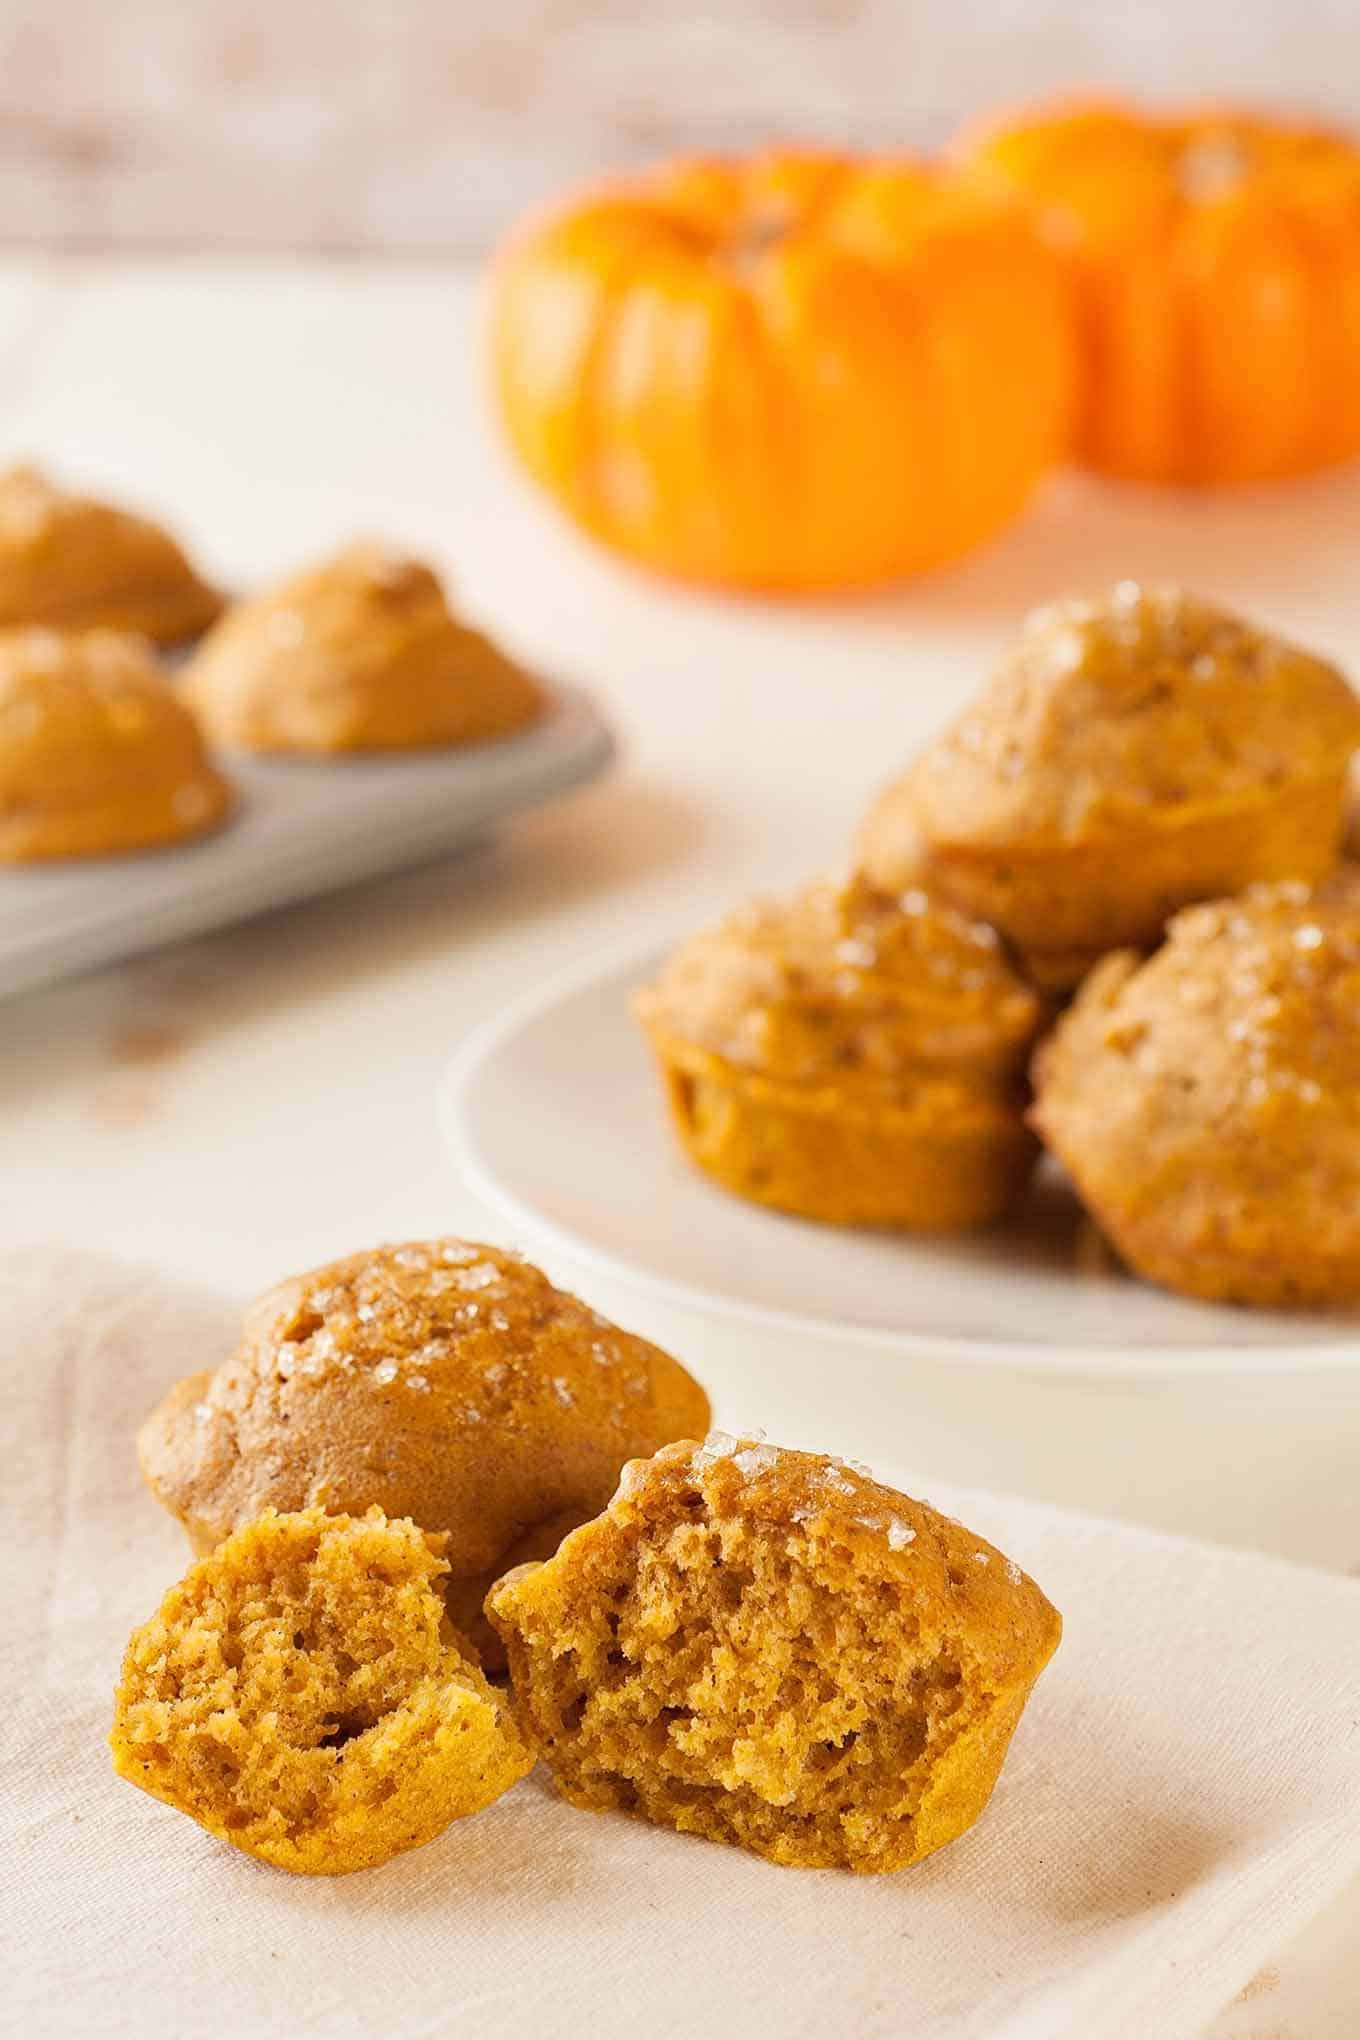 Single pumpkin muffin on a napkin with a serving plate of whole muffins in the background.